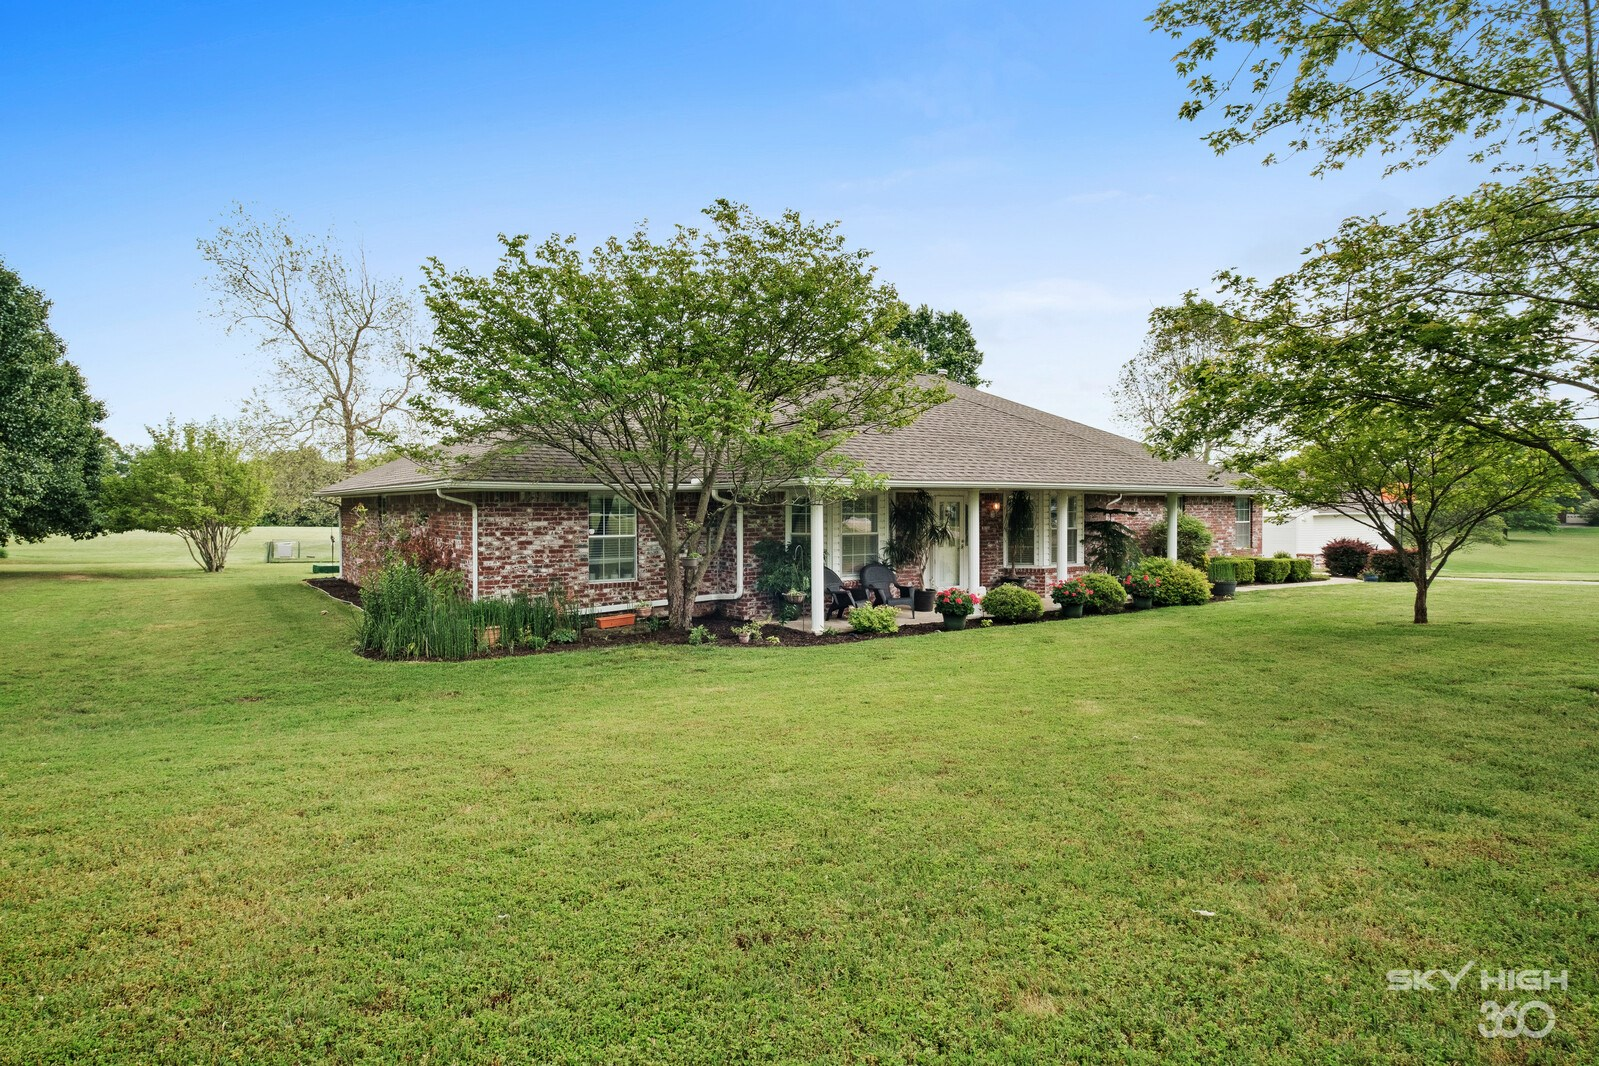 Country Home With 3.5 Acres for Sale in Springdale, AR